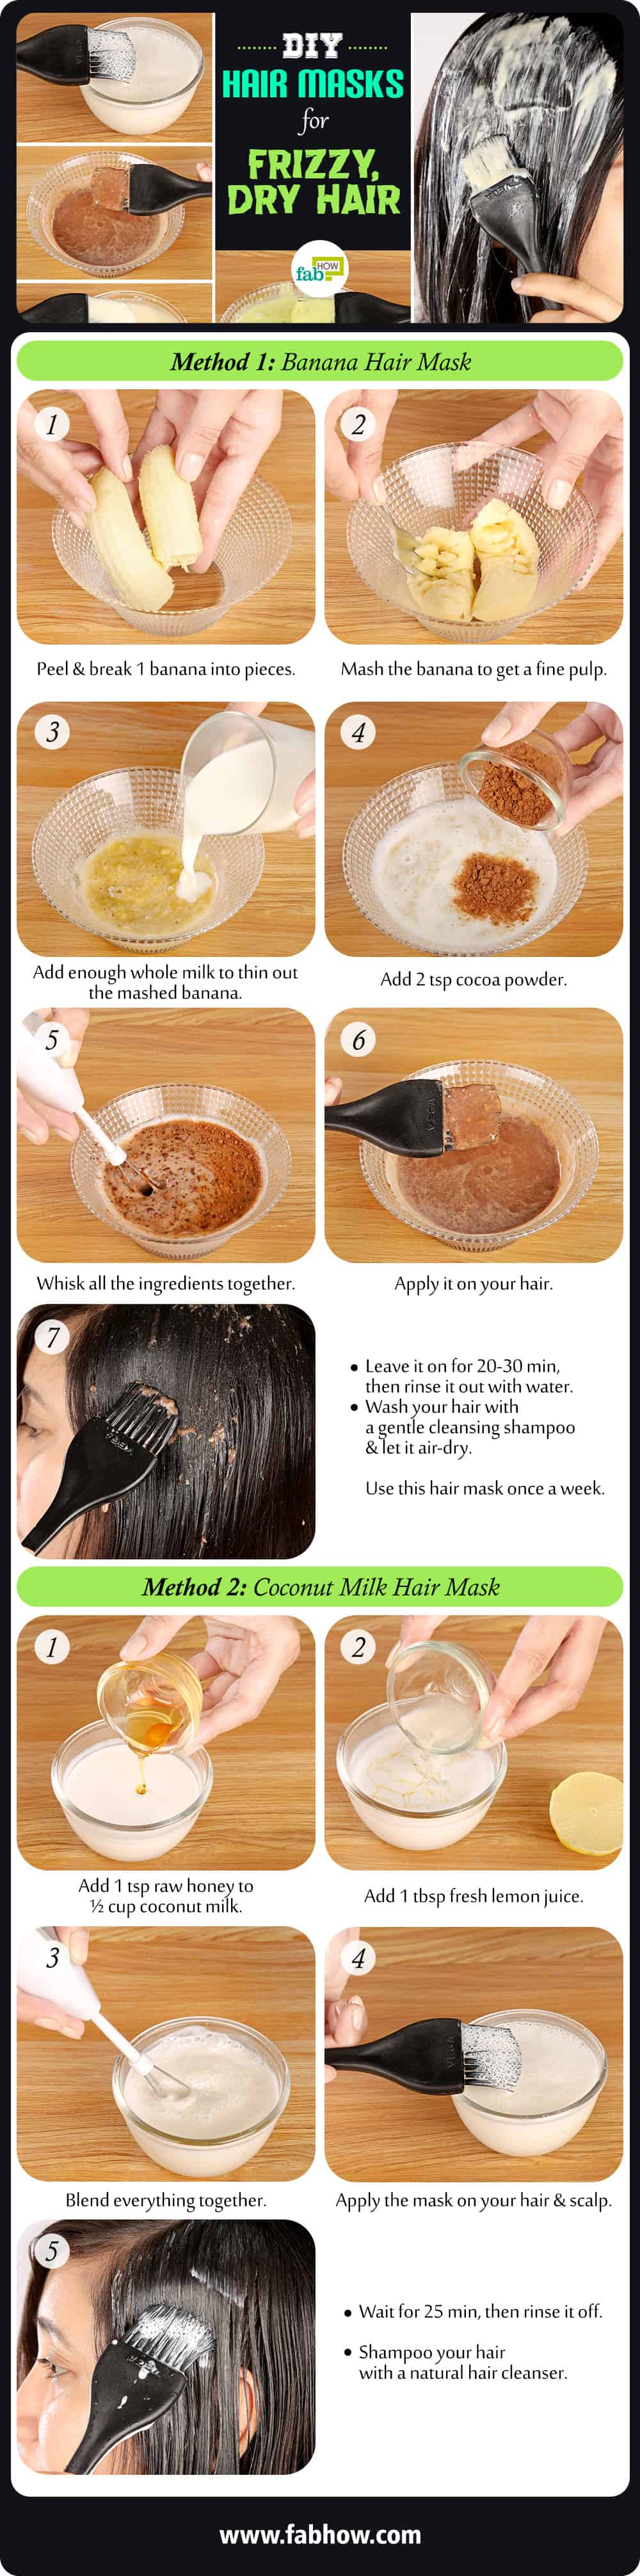 5 Diy Homemade Hair Masks For Dry Dull And Frizzy Hair Fab How